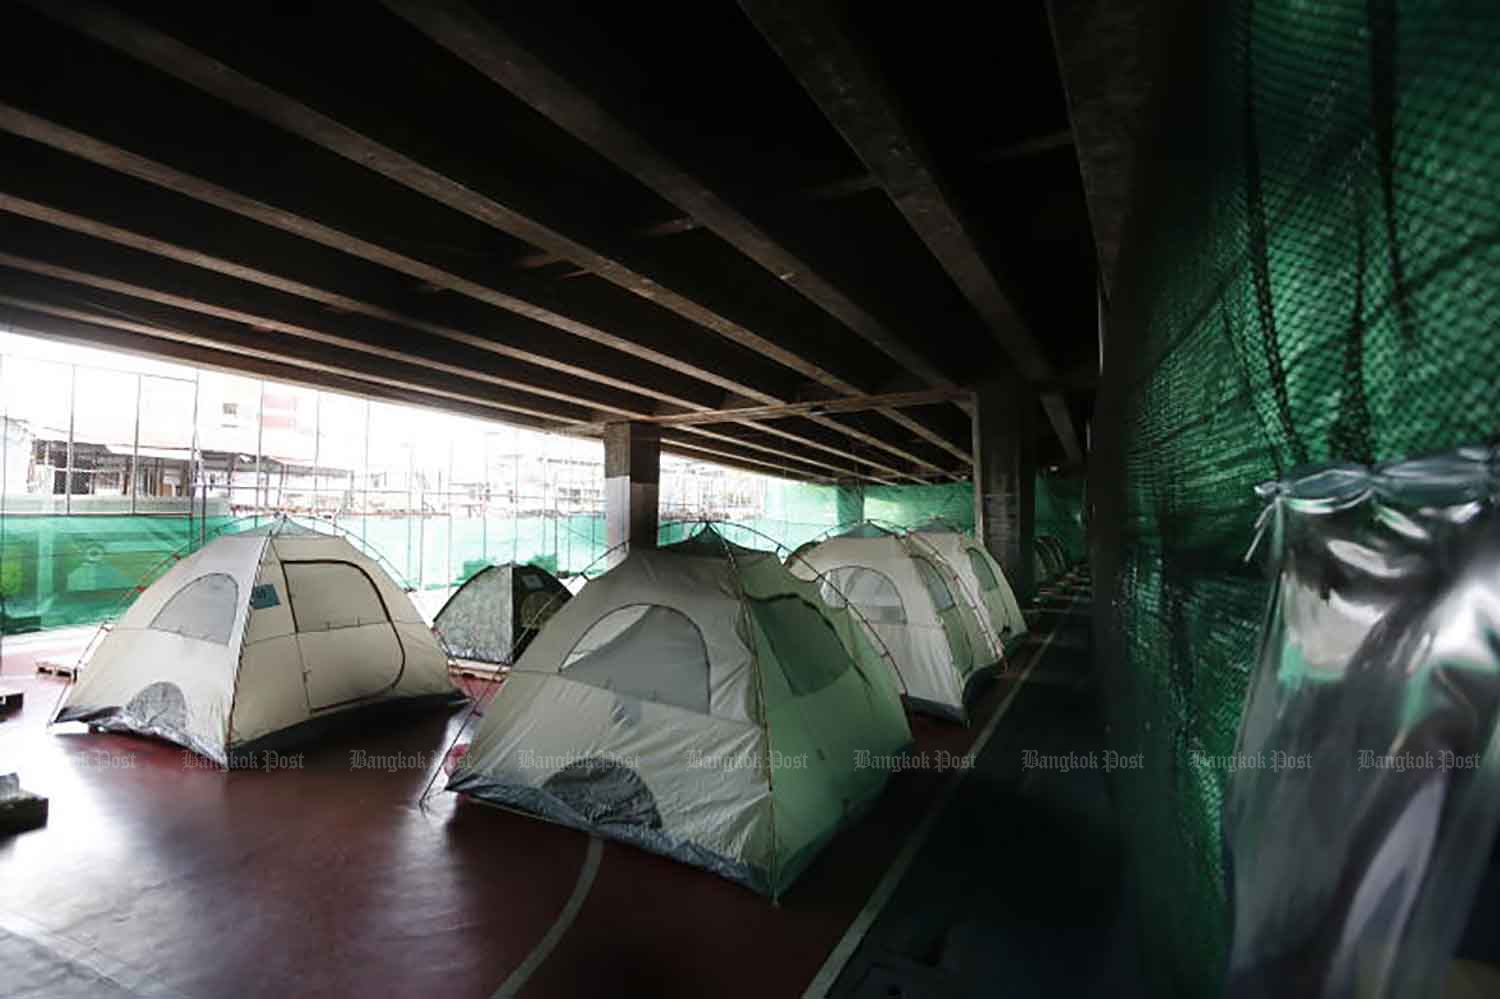 Tents were set up on a sports field under the elevated expressway in Klong Toey district, Bangkok, on Monday to isolate asymptomatic Covid-19 cases in a bid to control the virus. (Photo: Wichan Charoenkiatpakul)